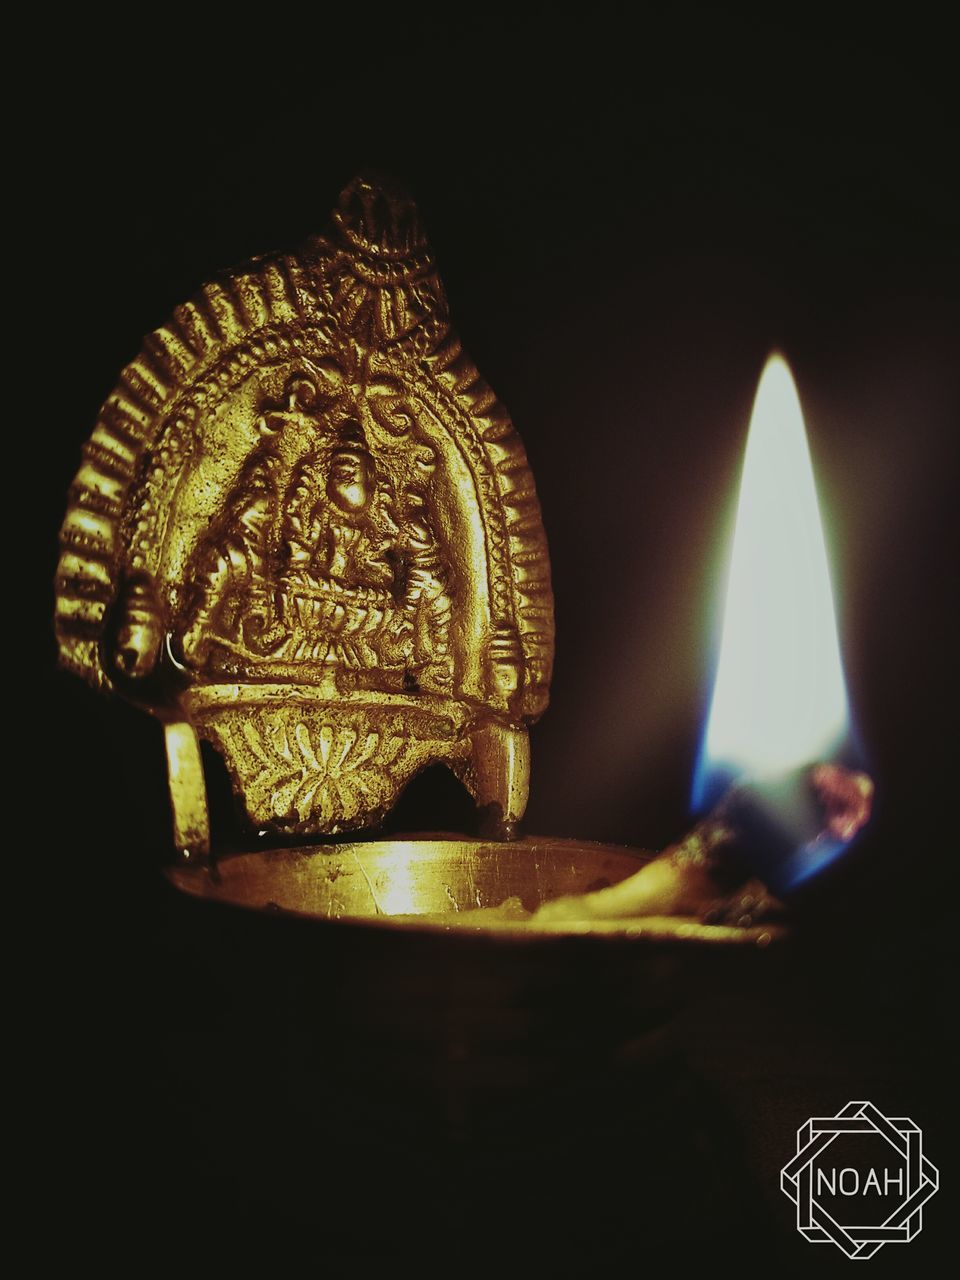 flame, burning, heat - temperature, candle, glowing, religion, spirituality, human representation, no people, illuminated, indoors, close-up, diya - oil lamp, black background, gold colored, night, oil lamp